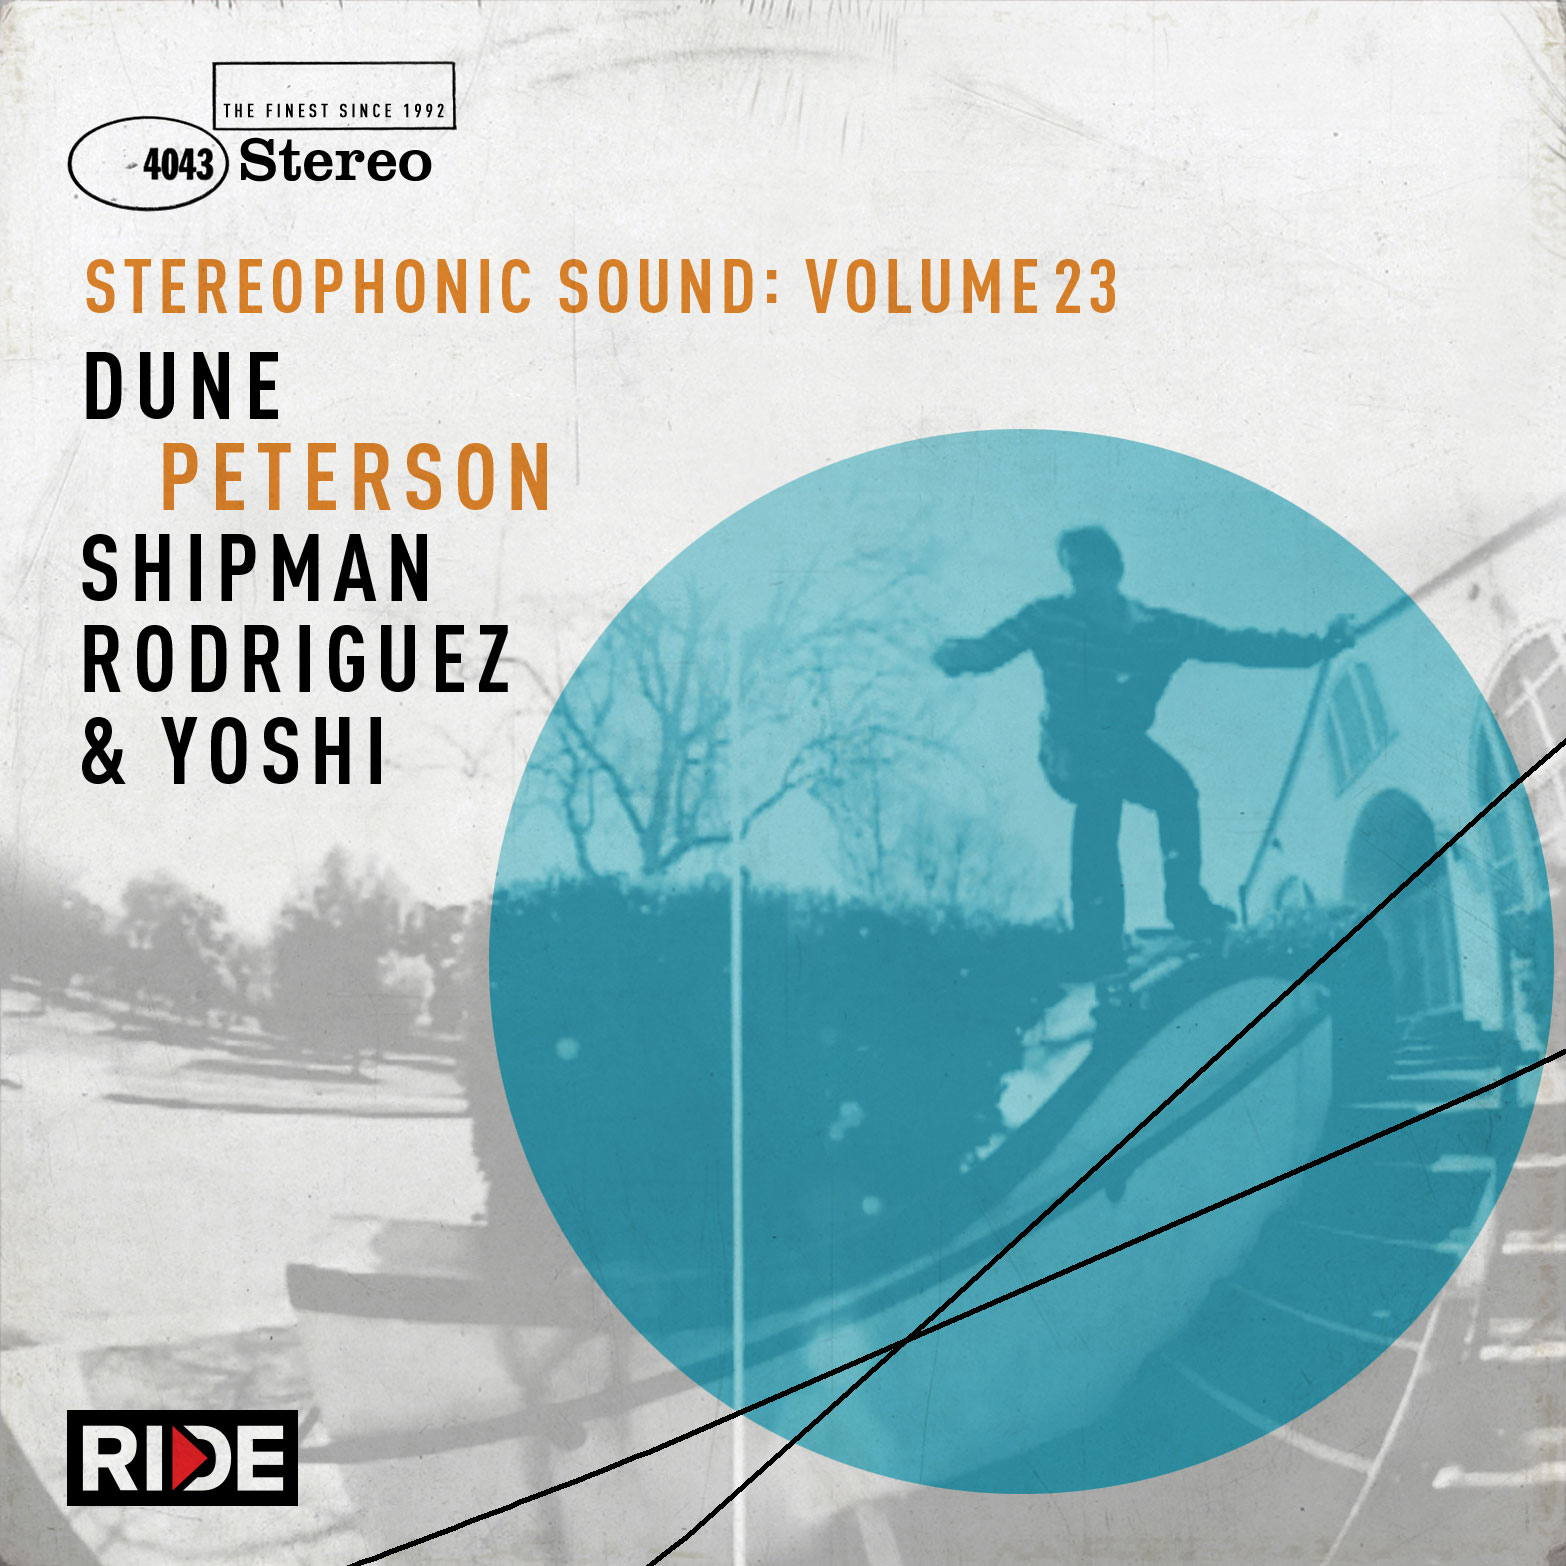 Stereophonic-sound-volume-23.jpg